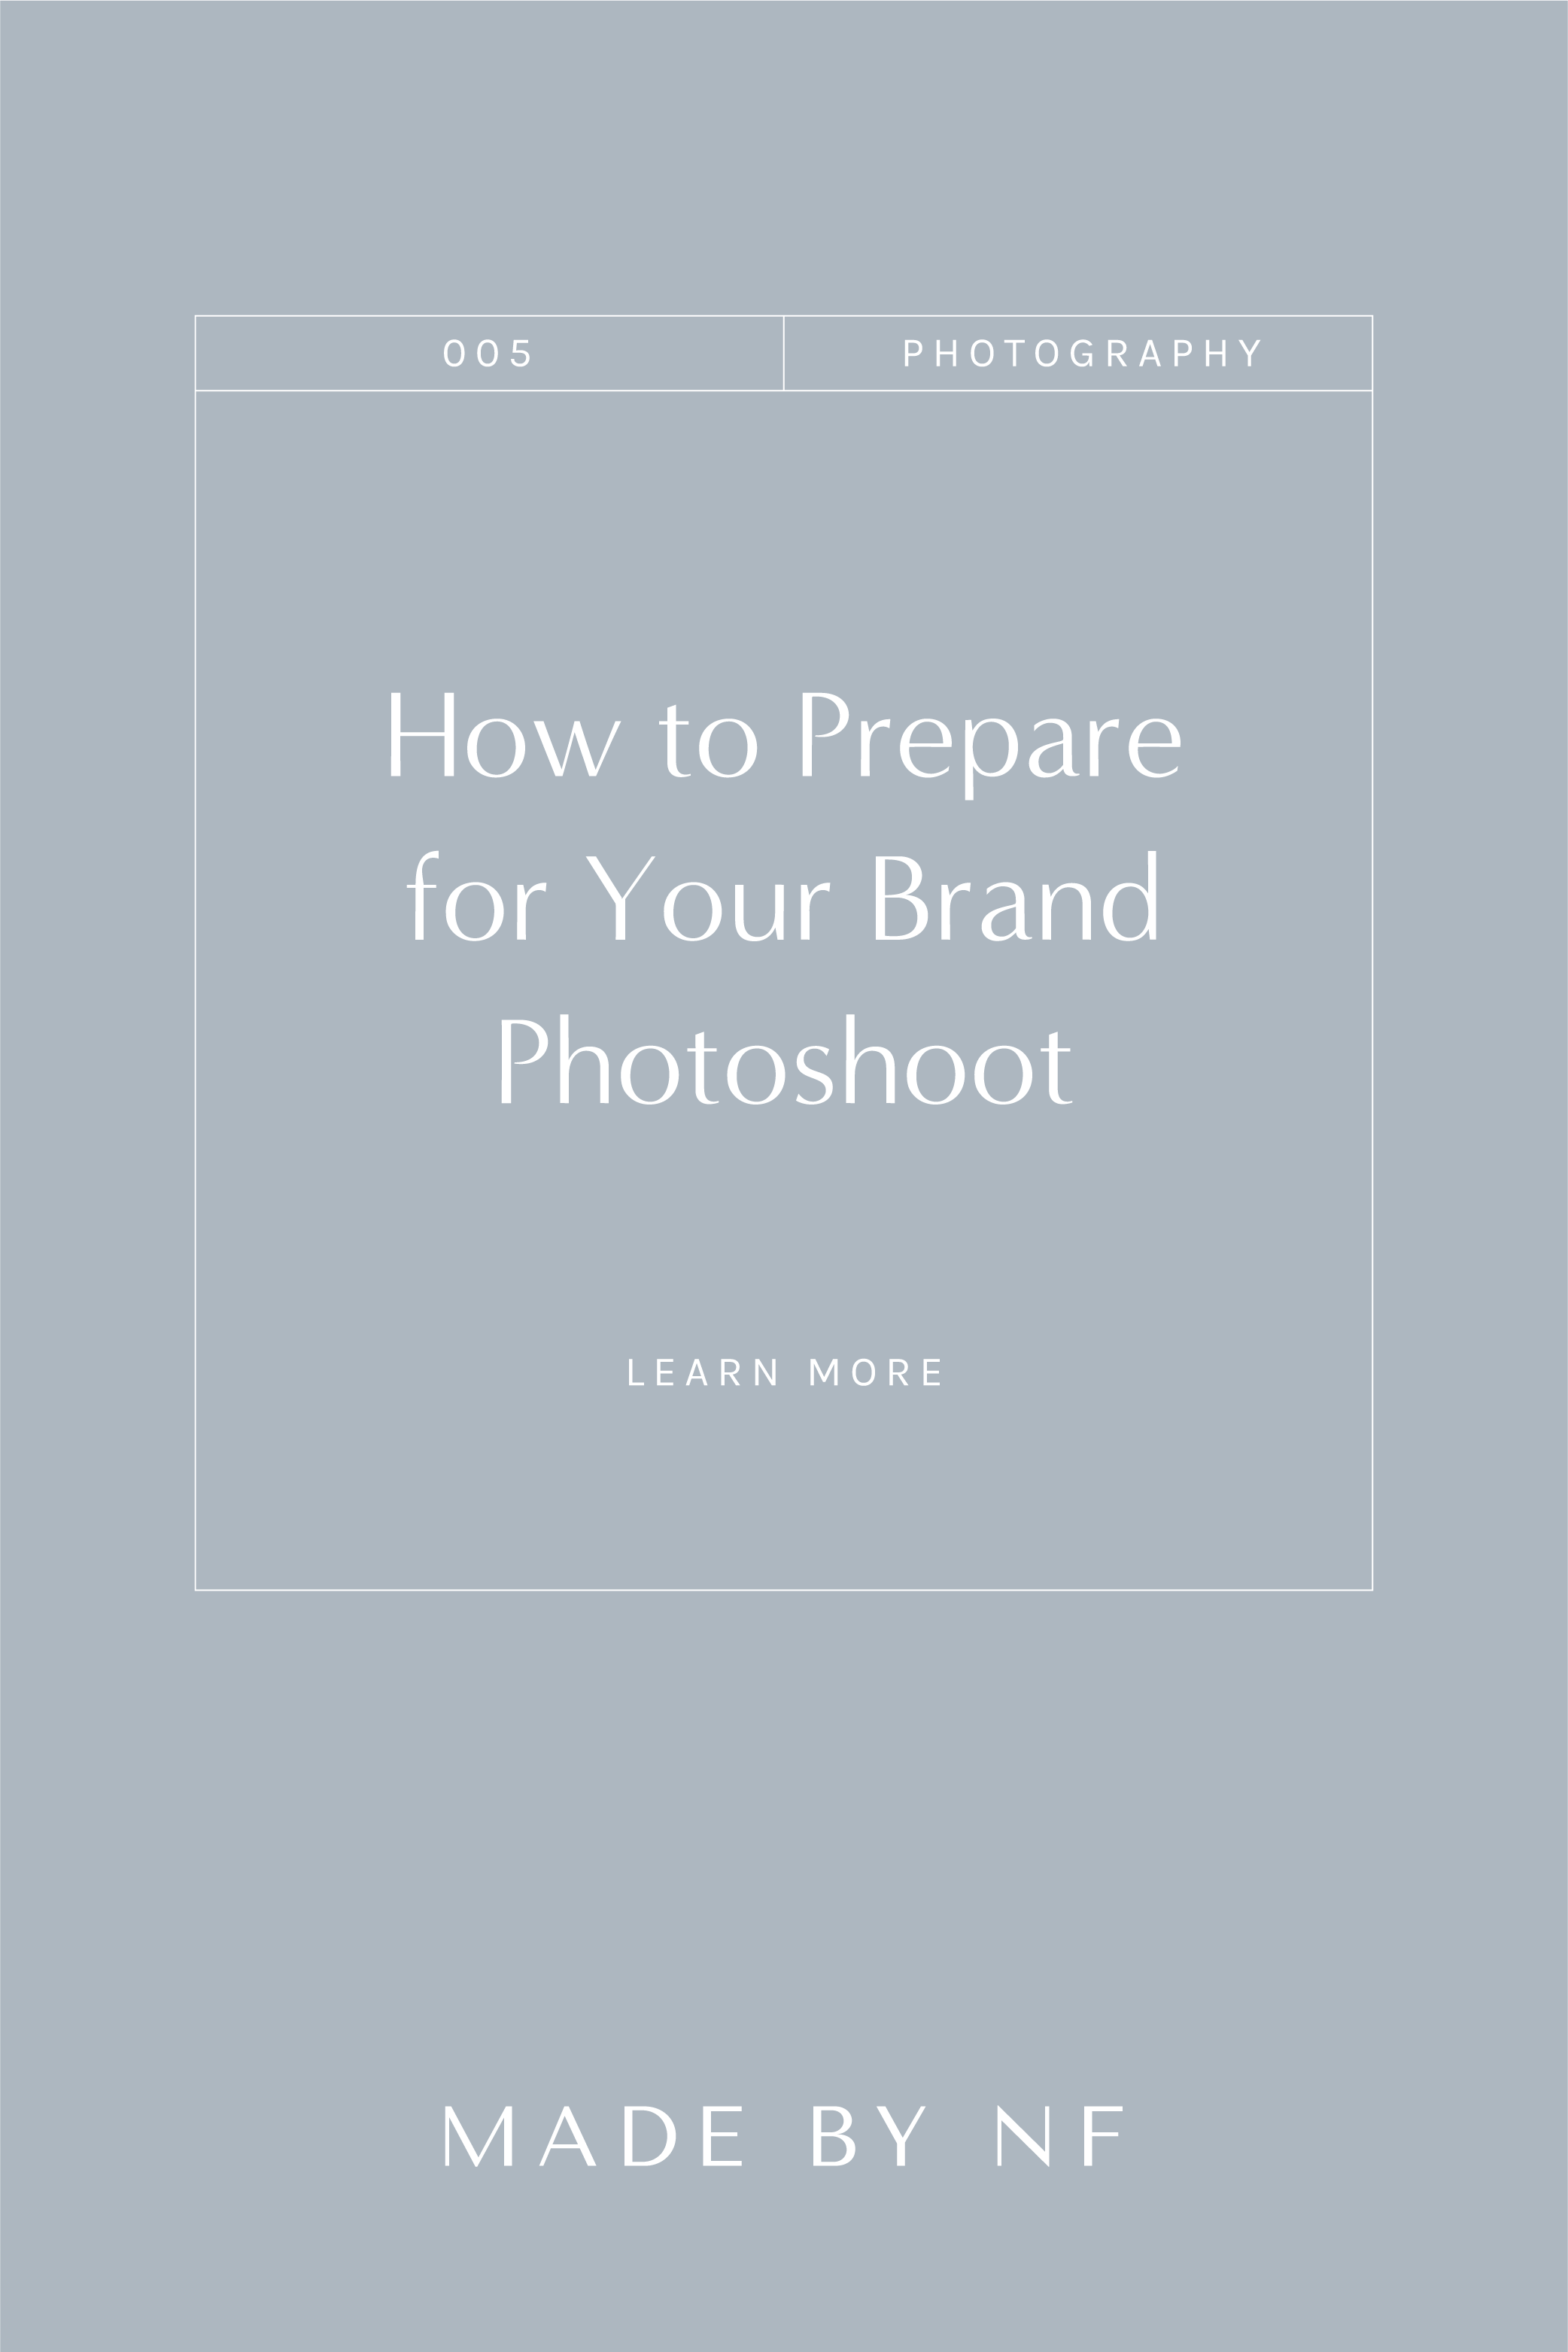 Four Tips to plan for your next brand photoshoot - brand photoshoot planning tips from a lifestyle photographer